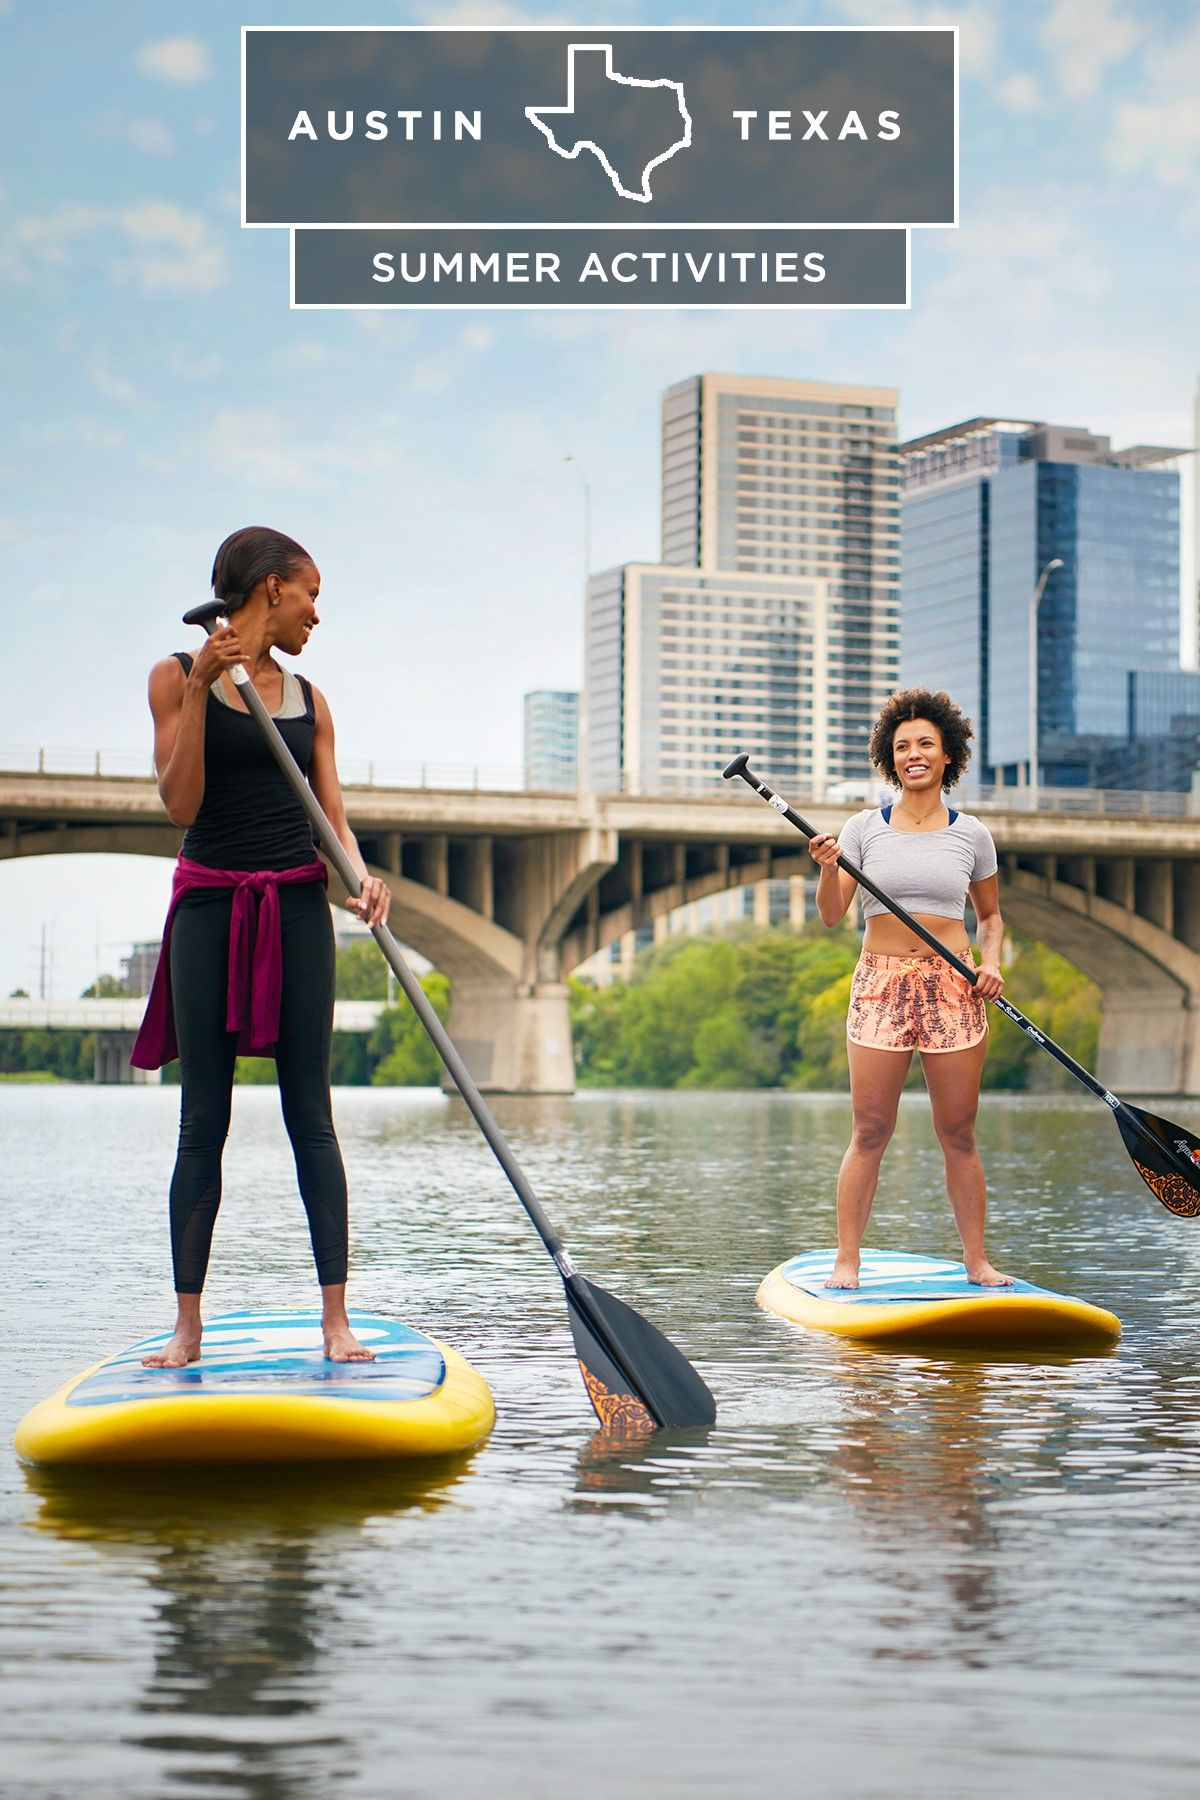 Best Things To Do Outside In Austin Visit Austin Tx Outdoors Adventure Austin Vacation Texas Summer Activities